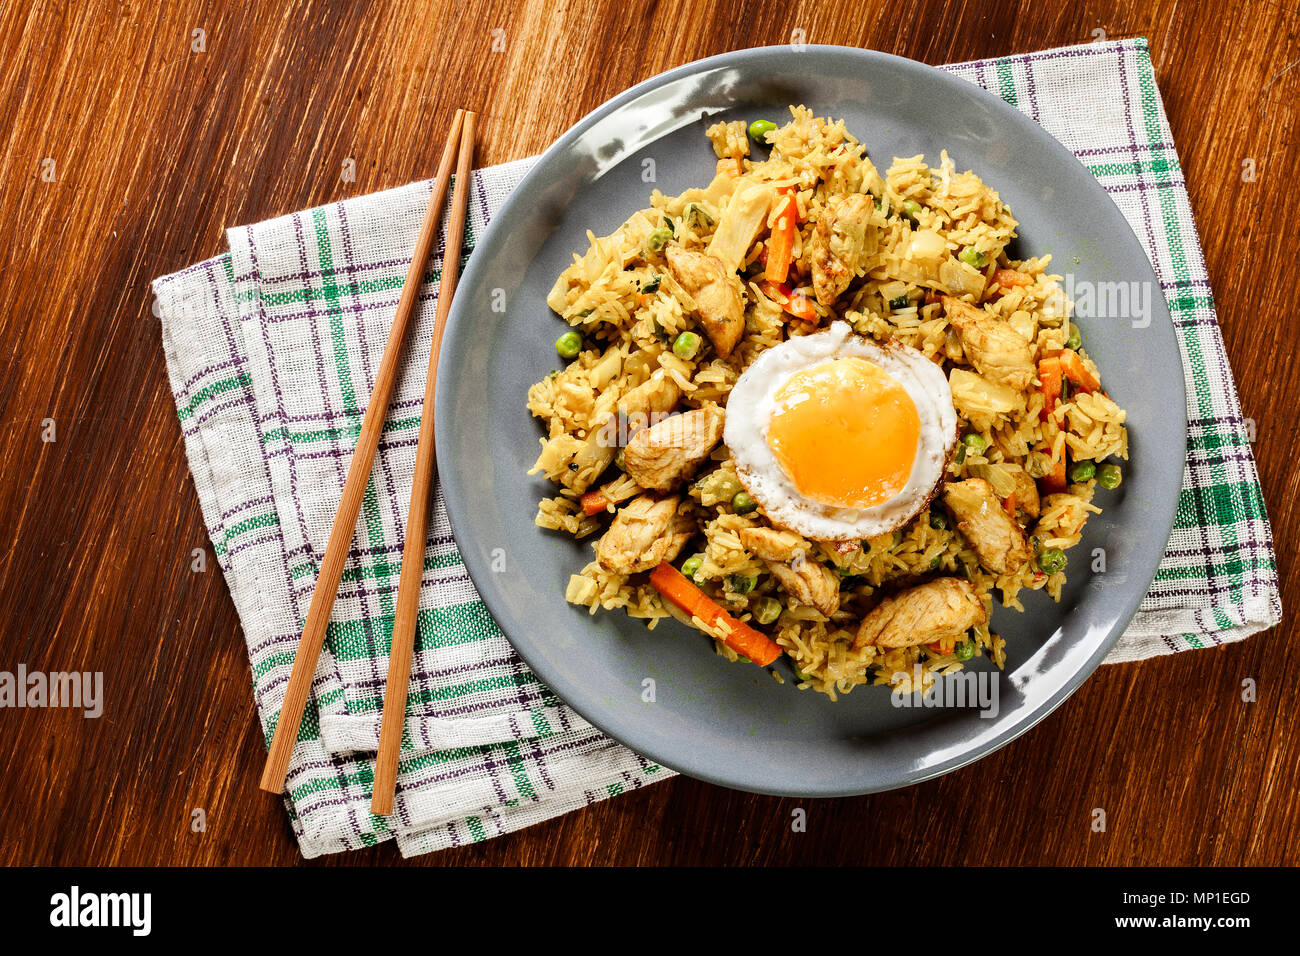 Fried rice nasi goreng with chicken egg and vegetables on a plate. Indonesian cuisine. Top view - Stock Image